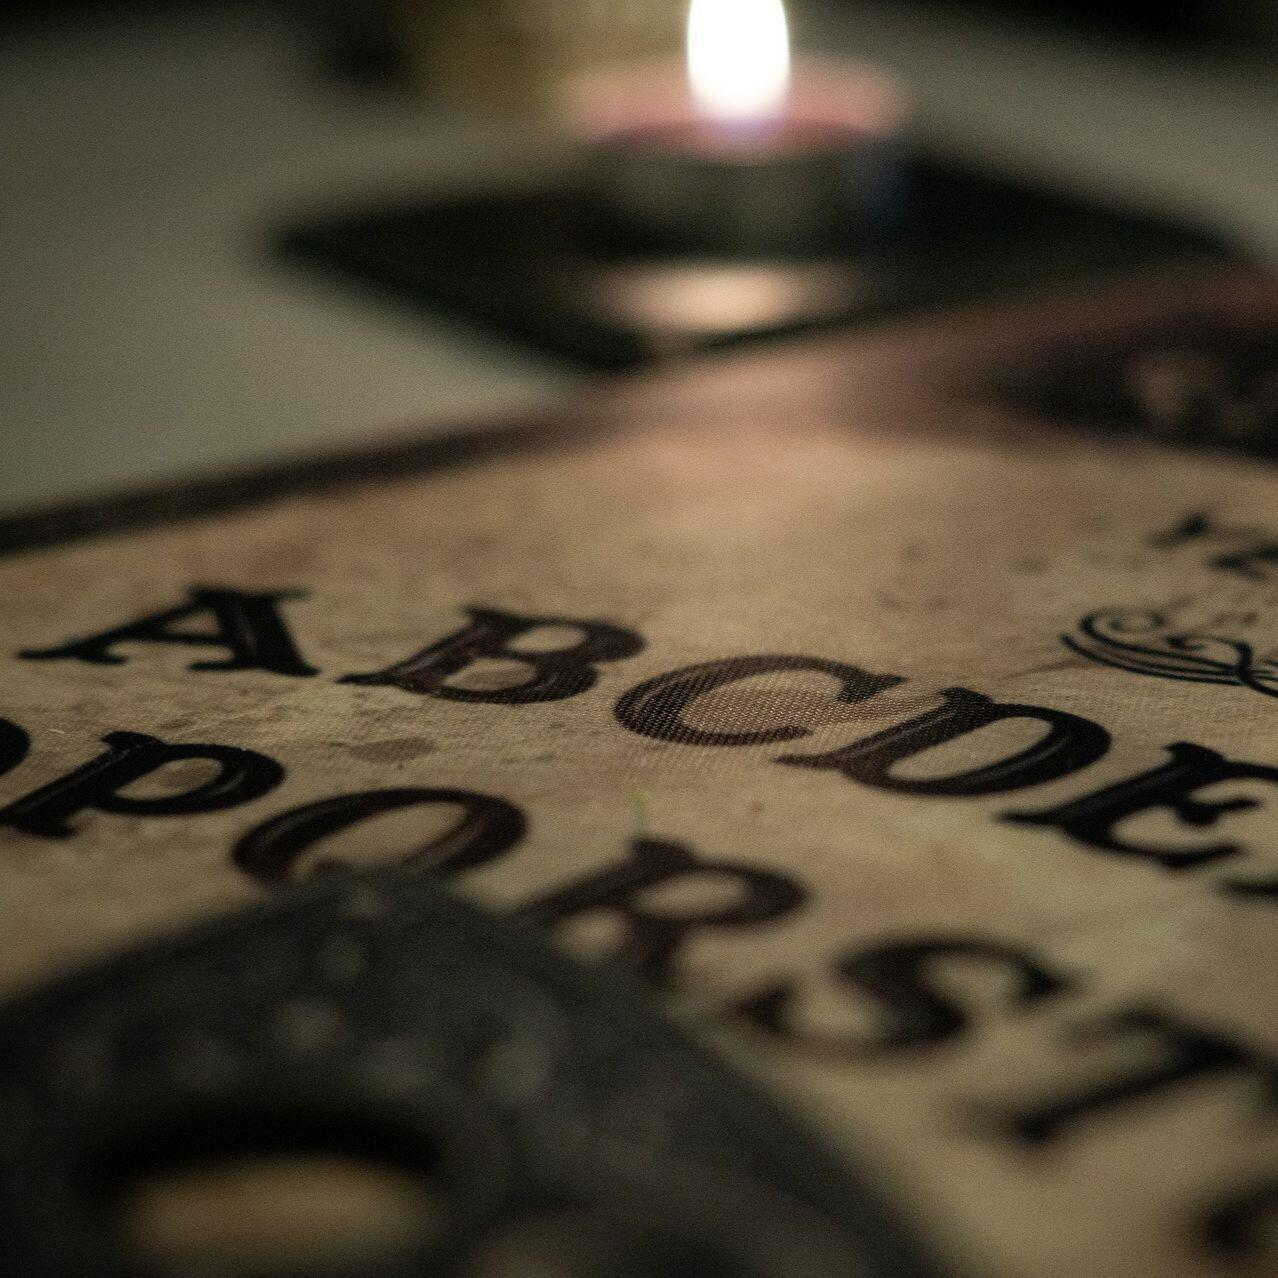 491: Halloween Special: The Ouija Board (Something Different)